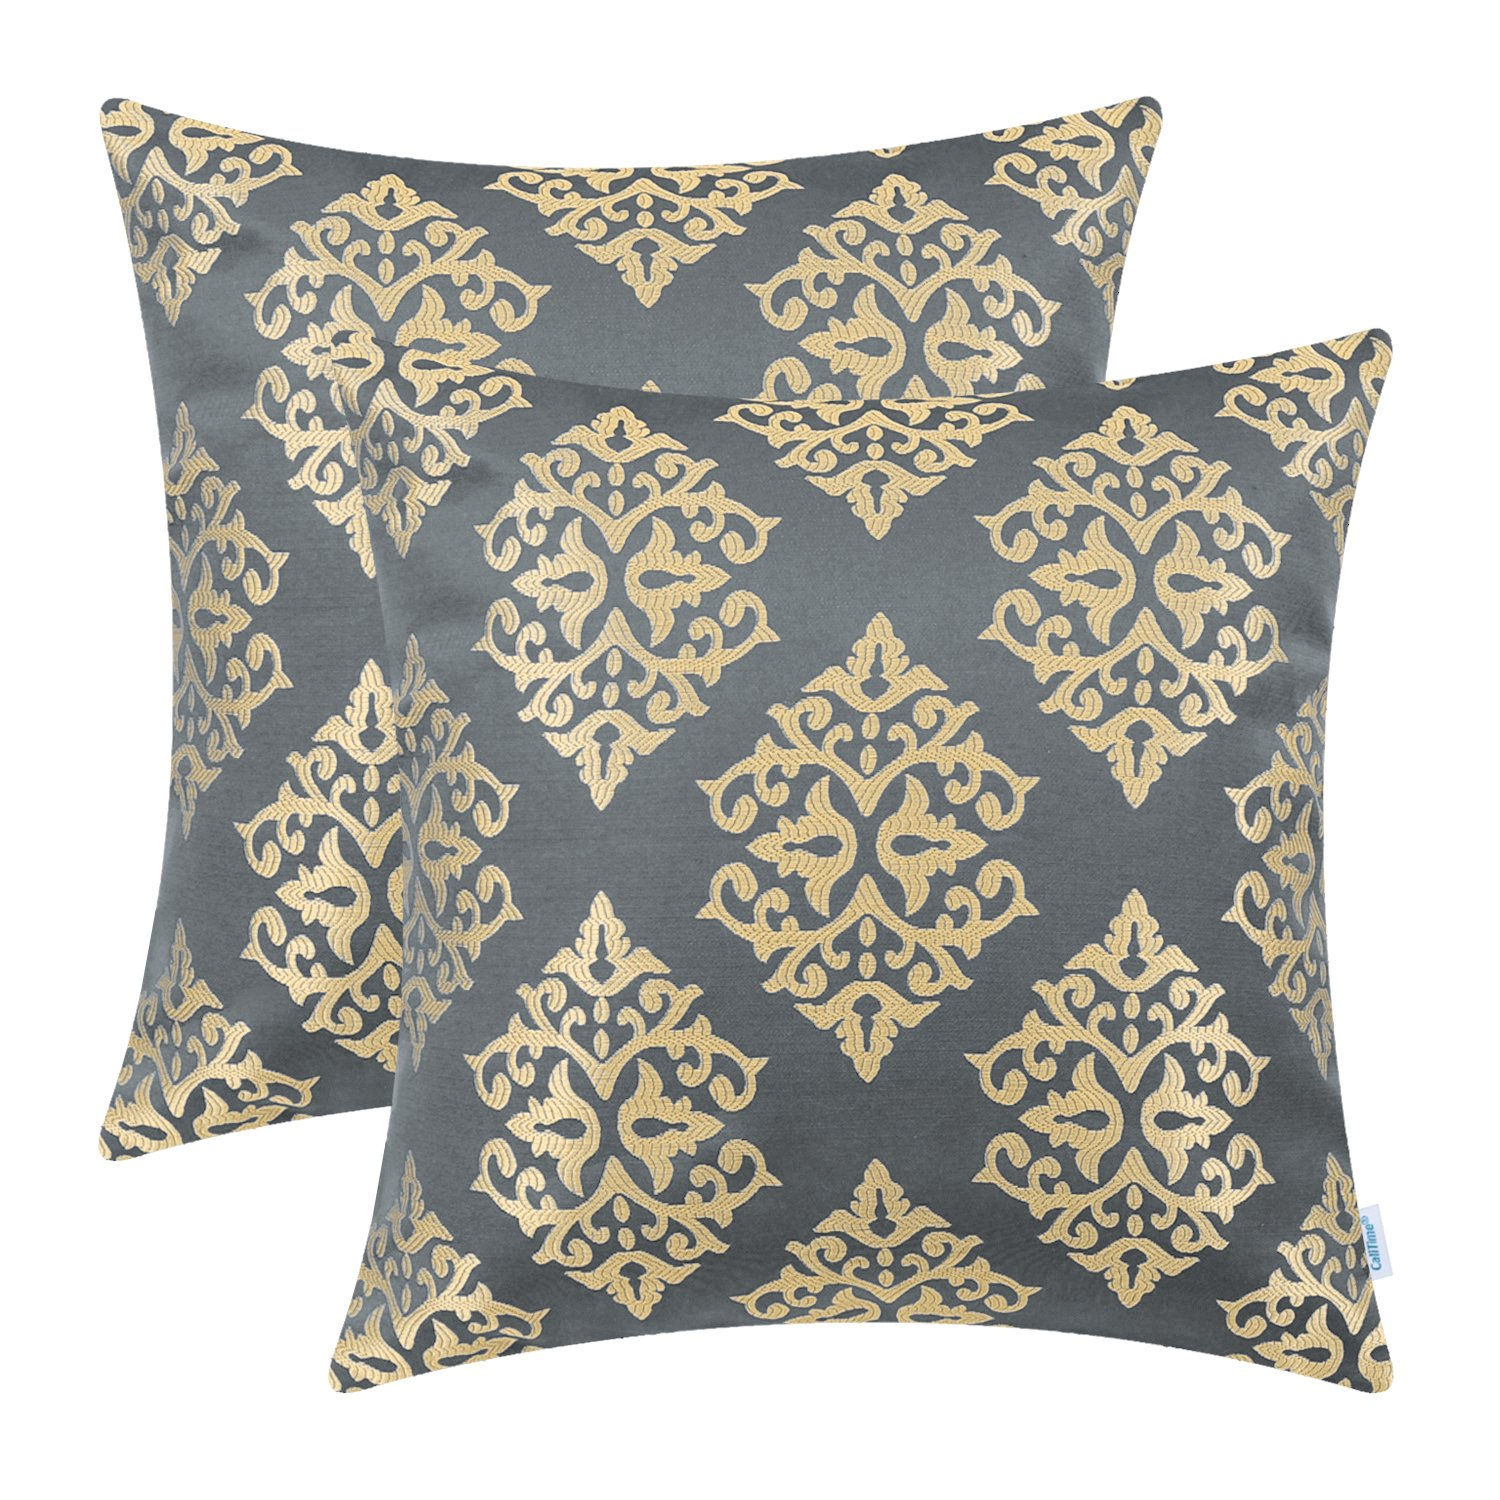 CaliTime Pack of 2 Soft Jacquard Throw Pillow Covers Cases Couch Sofa Home Decoration Vintage Damask Floral 18 X 18 inches Grey Gold